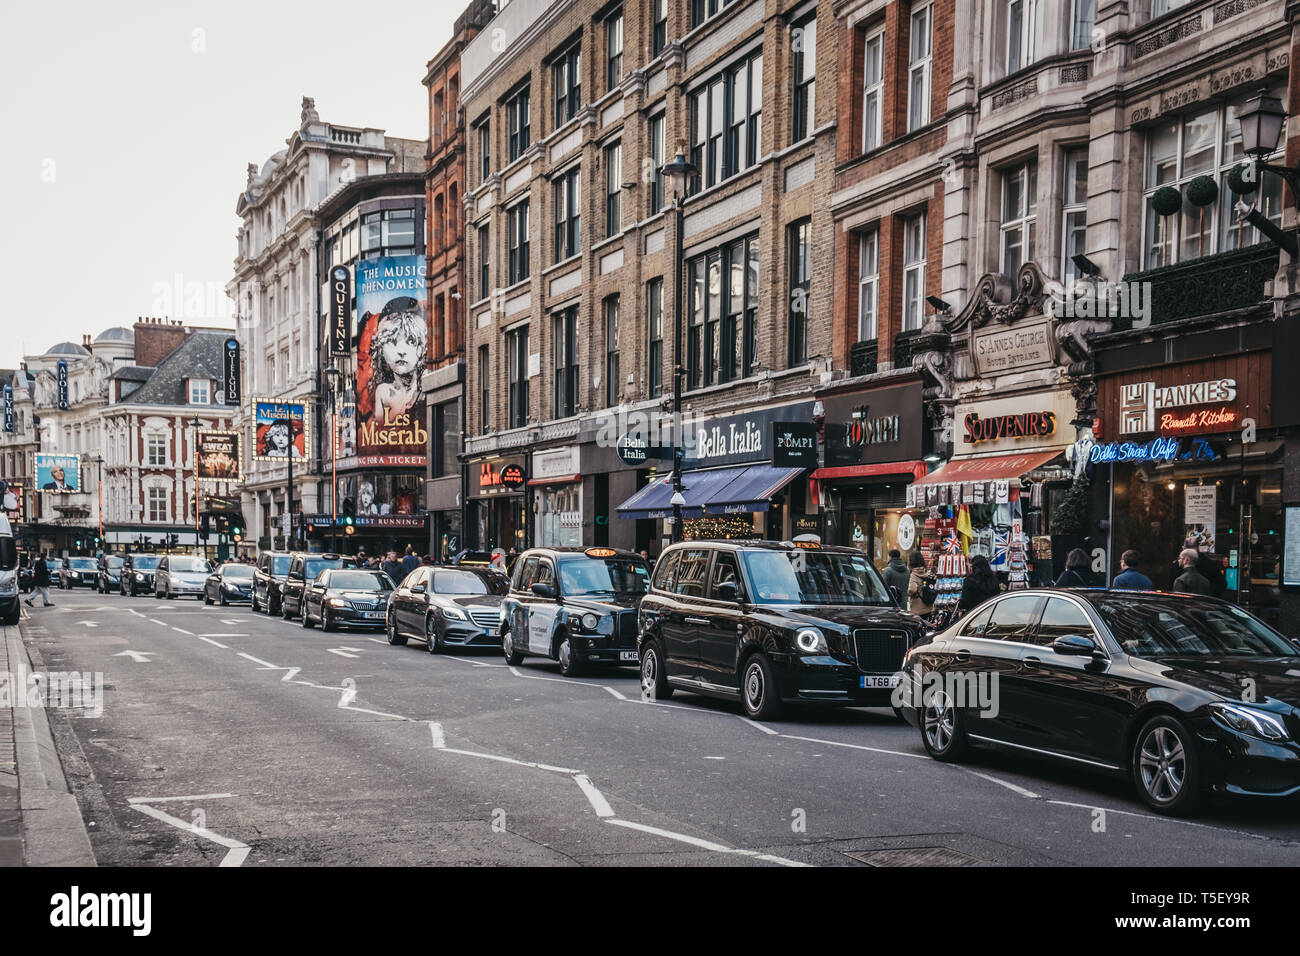 London, UK - April 13, 2019: Traffic on Shaftesbury Avenue, a major street in the West End of London, named after Anthony Ashley Cooper, 7th Earl of S Stock Photo